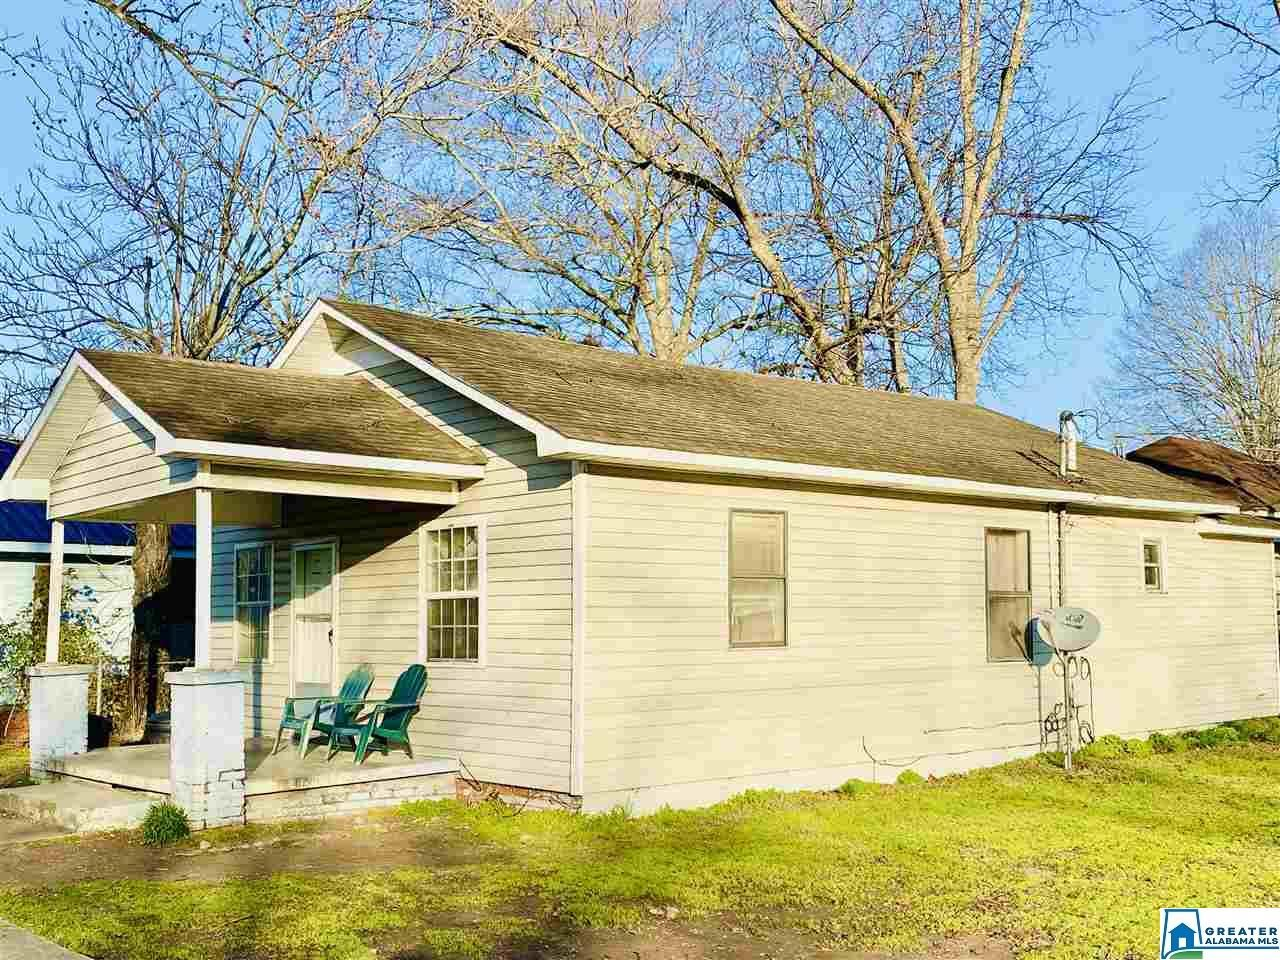 123 W 22ND ST, Anniston, AL 36201 - #: 873211